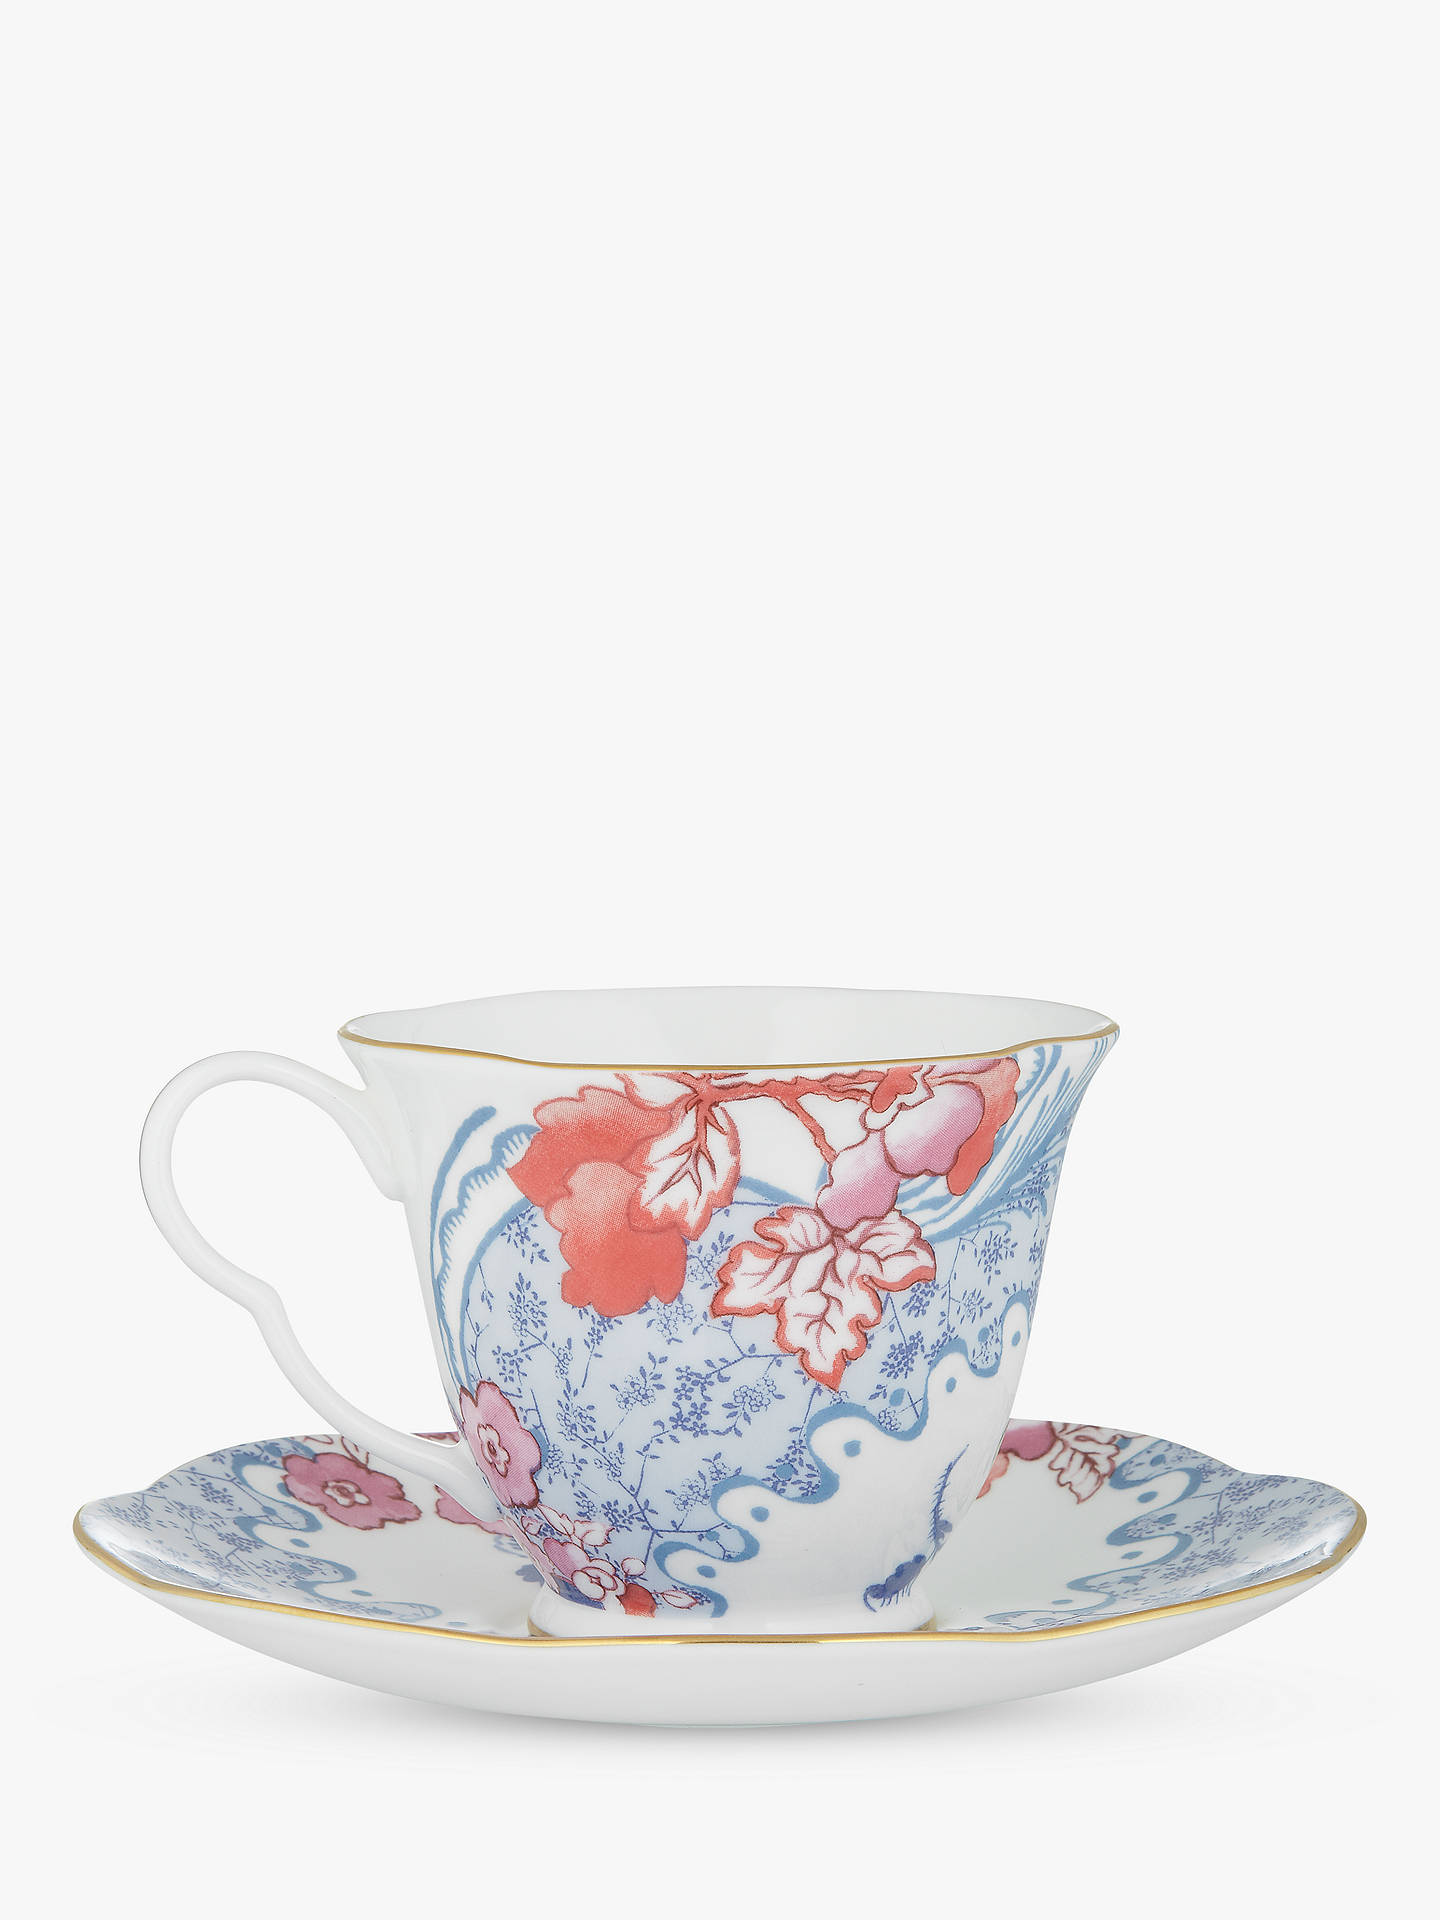 Buy Wedgwood Butterfly Bloom Cup and Saucer Set, Pink/Blue Online at johnlewis.com